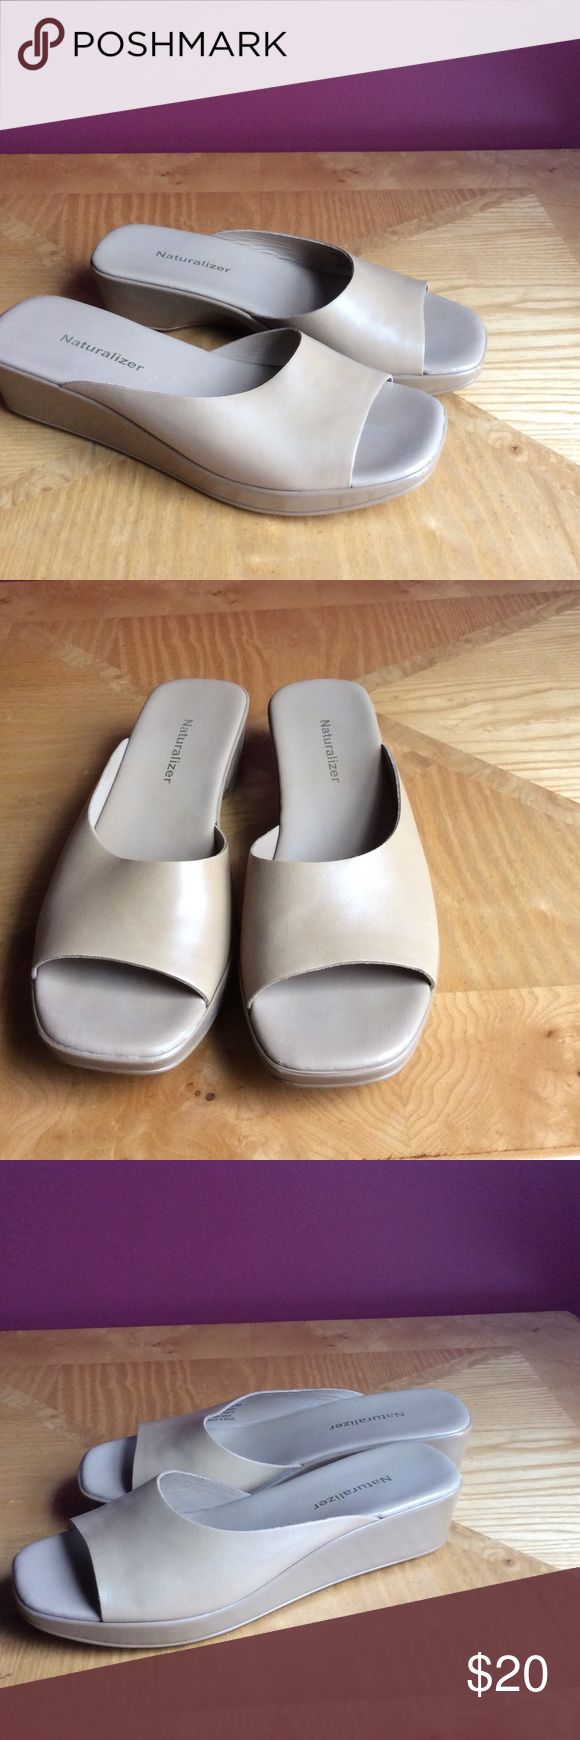 Naturalizer camel sandal SZ 8.5 M Great neutral slip on sandal for summer.  Color goes with so many things. Shoes were worn a couple times. EUC Naturalizer Shoes Sandals